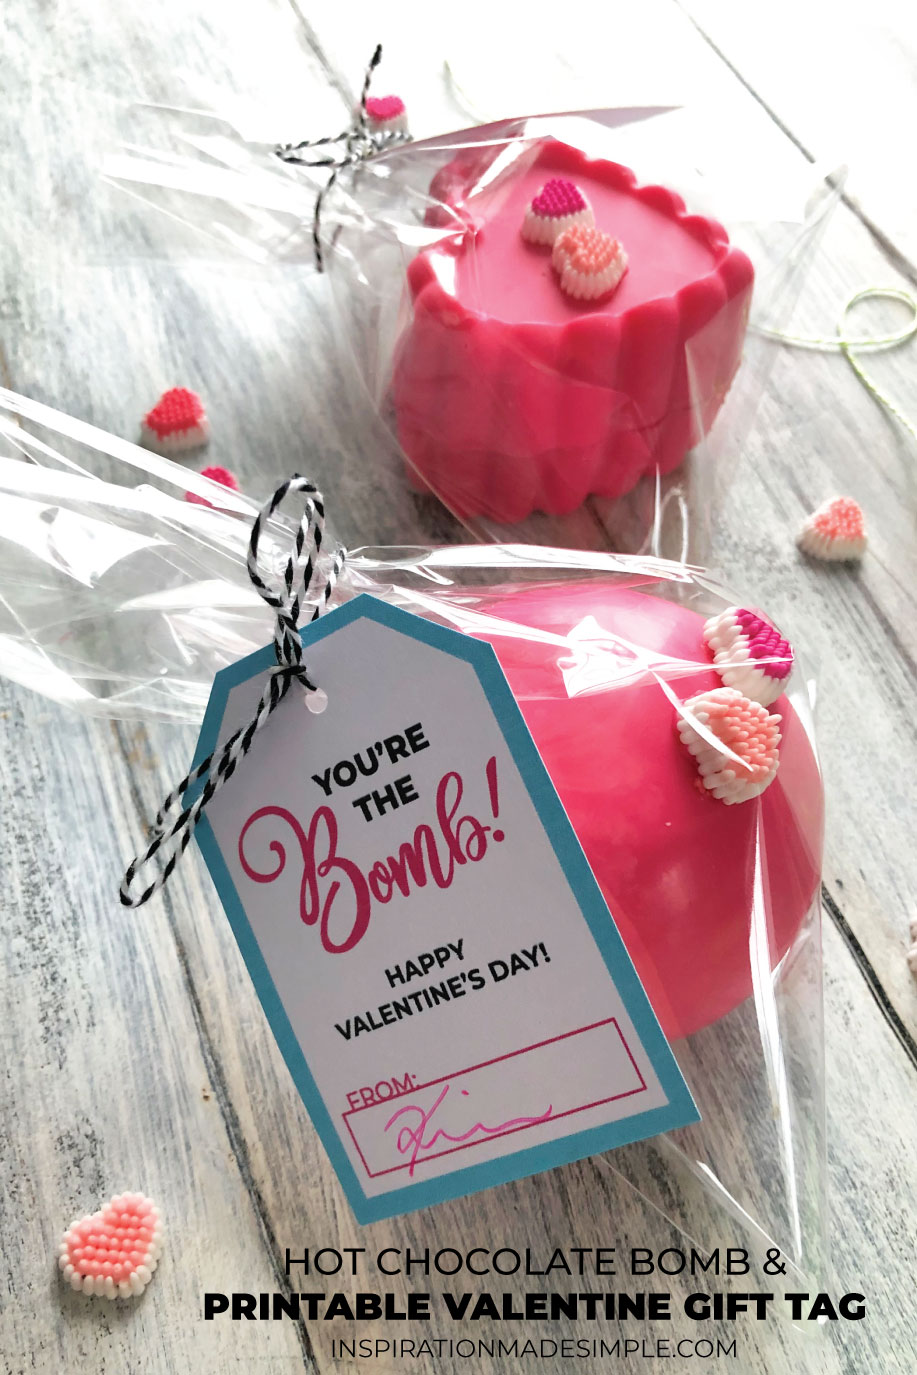 Hot Chocolate Bomb Valentine Idea and Printable Tag